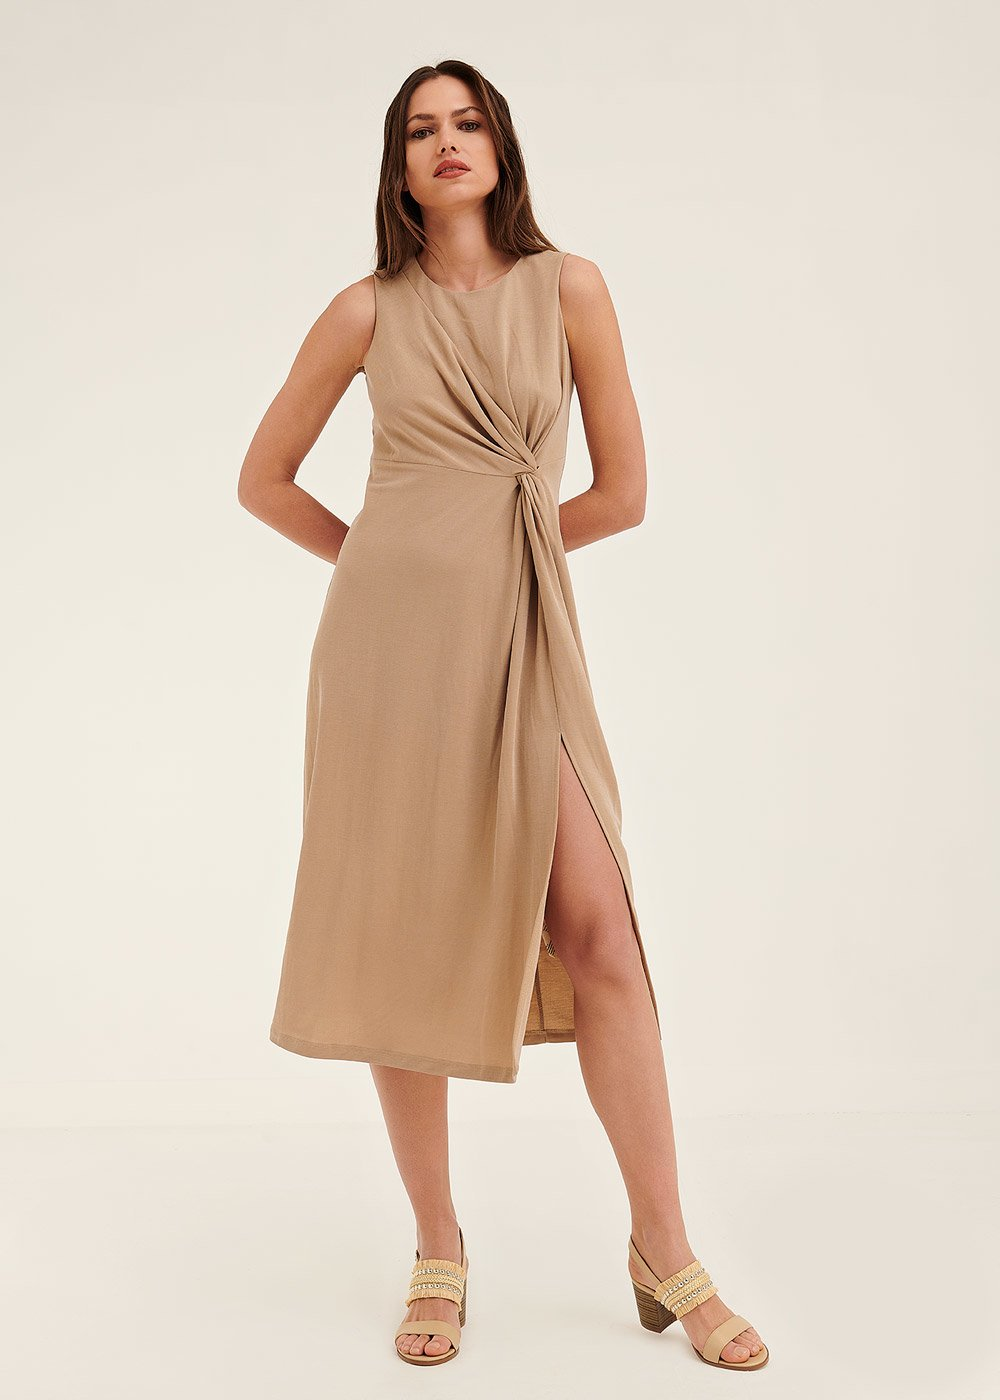 Alexis jersey dress with waist knot - Taupe - Woman